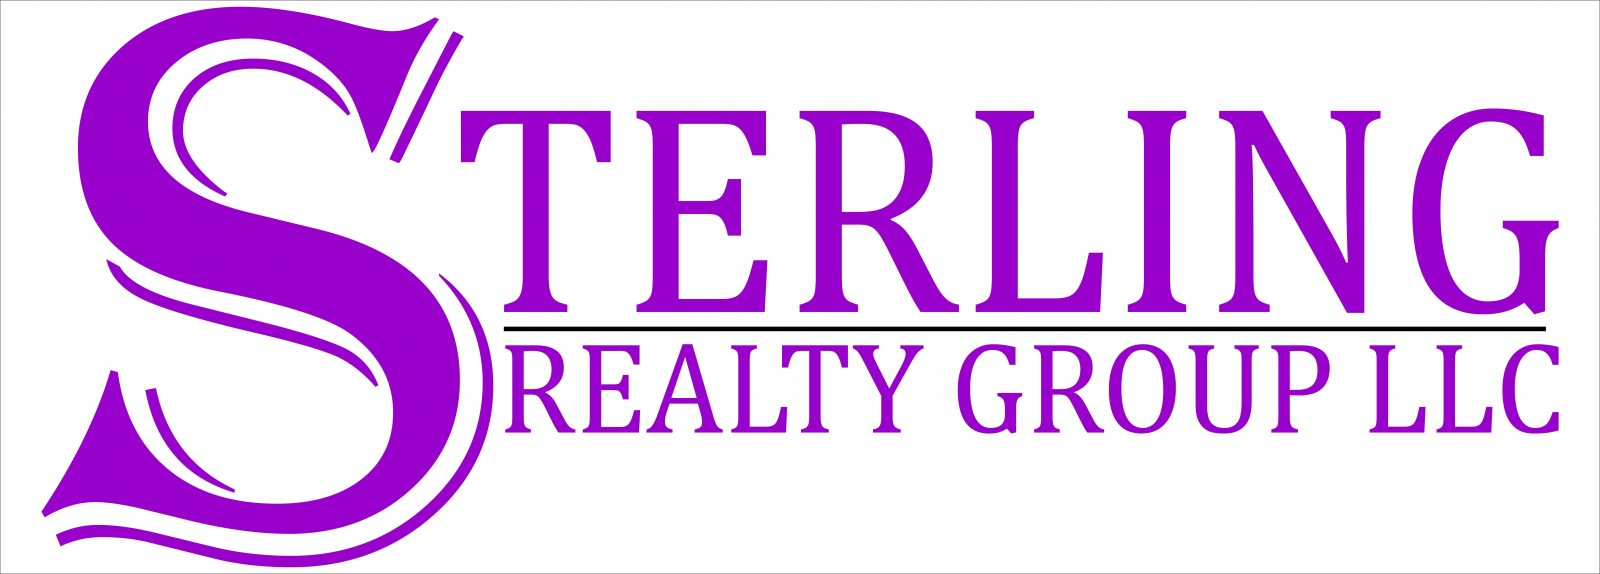 Sterling Realty Group LLC